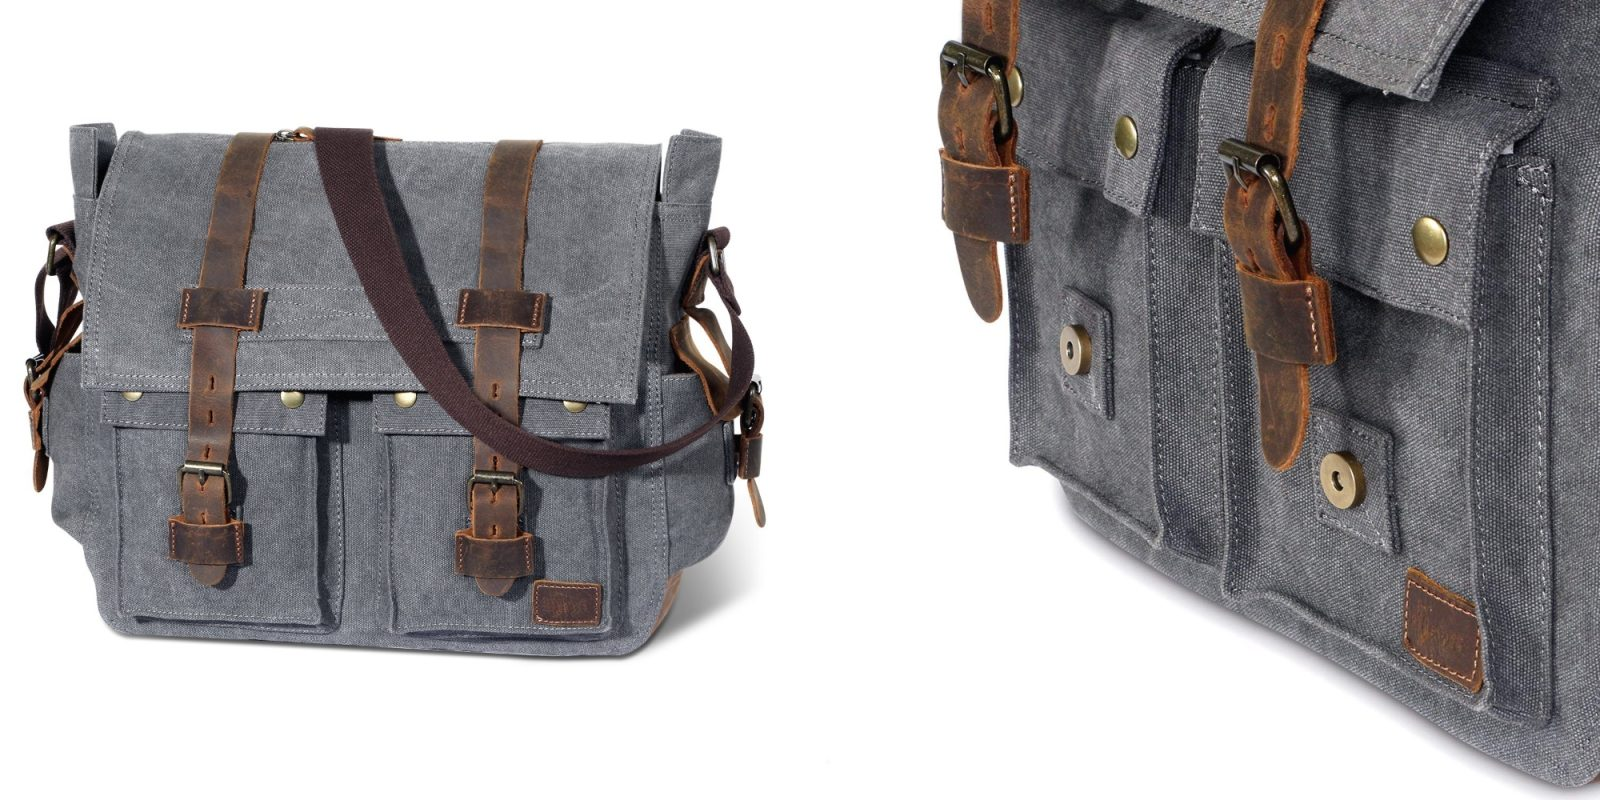 d4dd8d6994 Fit a 15-inch MacBook Pro   much more in this highly-rated messenger bag    26 (30% off)